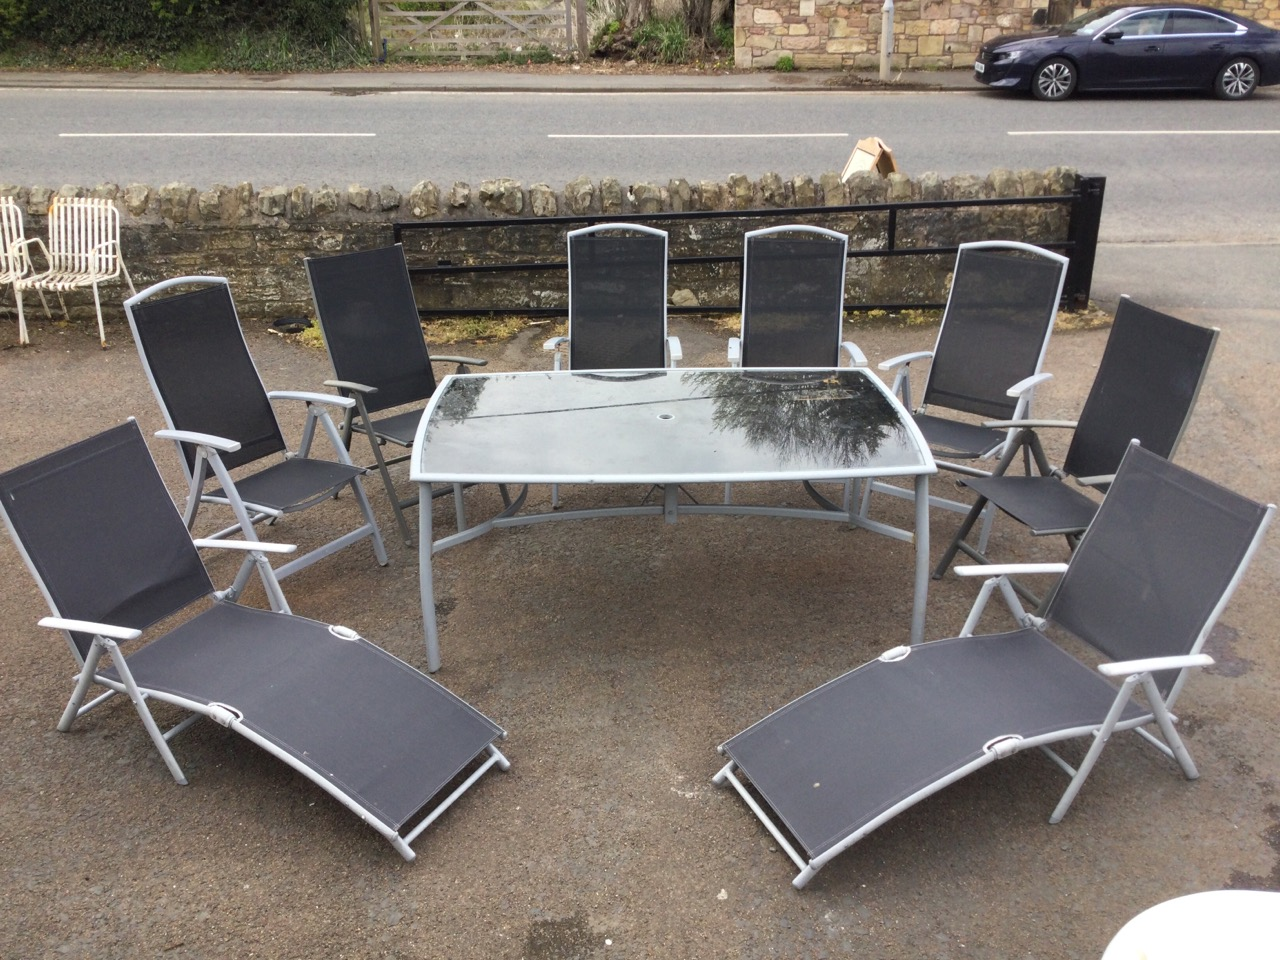 A contemporary rectangular garden table & chair set, the folding chairs with fabric backs & seats